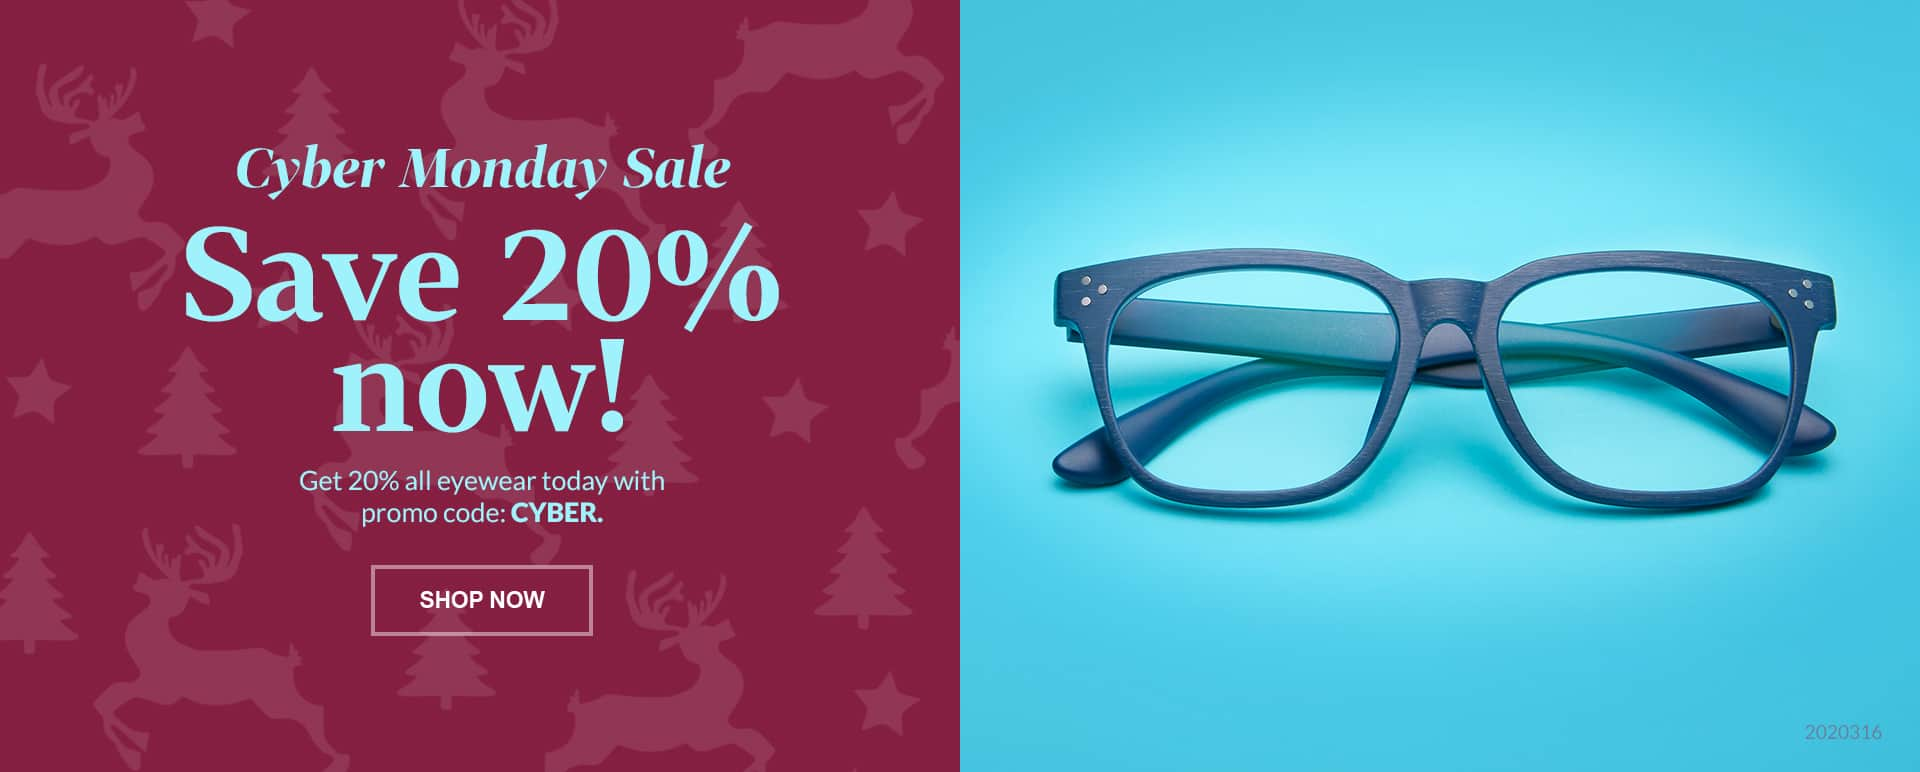 Zenni optical coupon code 2018